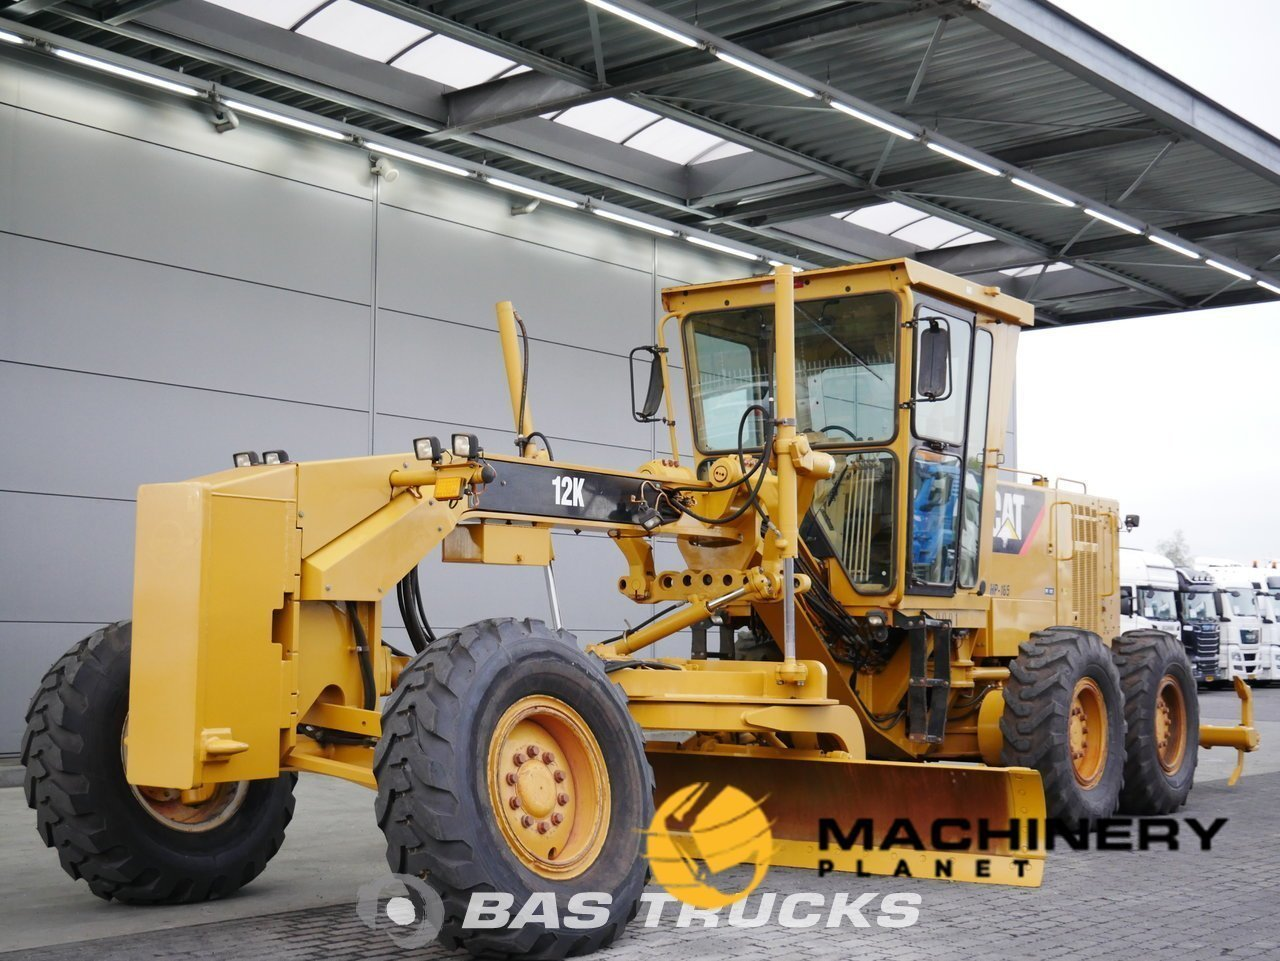 Used-Construction-equipment-Caterpillar-12K-6X4-2011_138115_1-1554098542667_5ca1a96ea2b8c-1.jpg